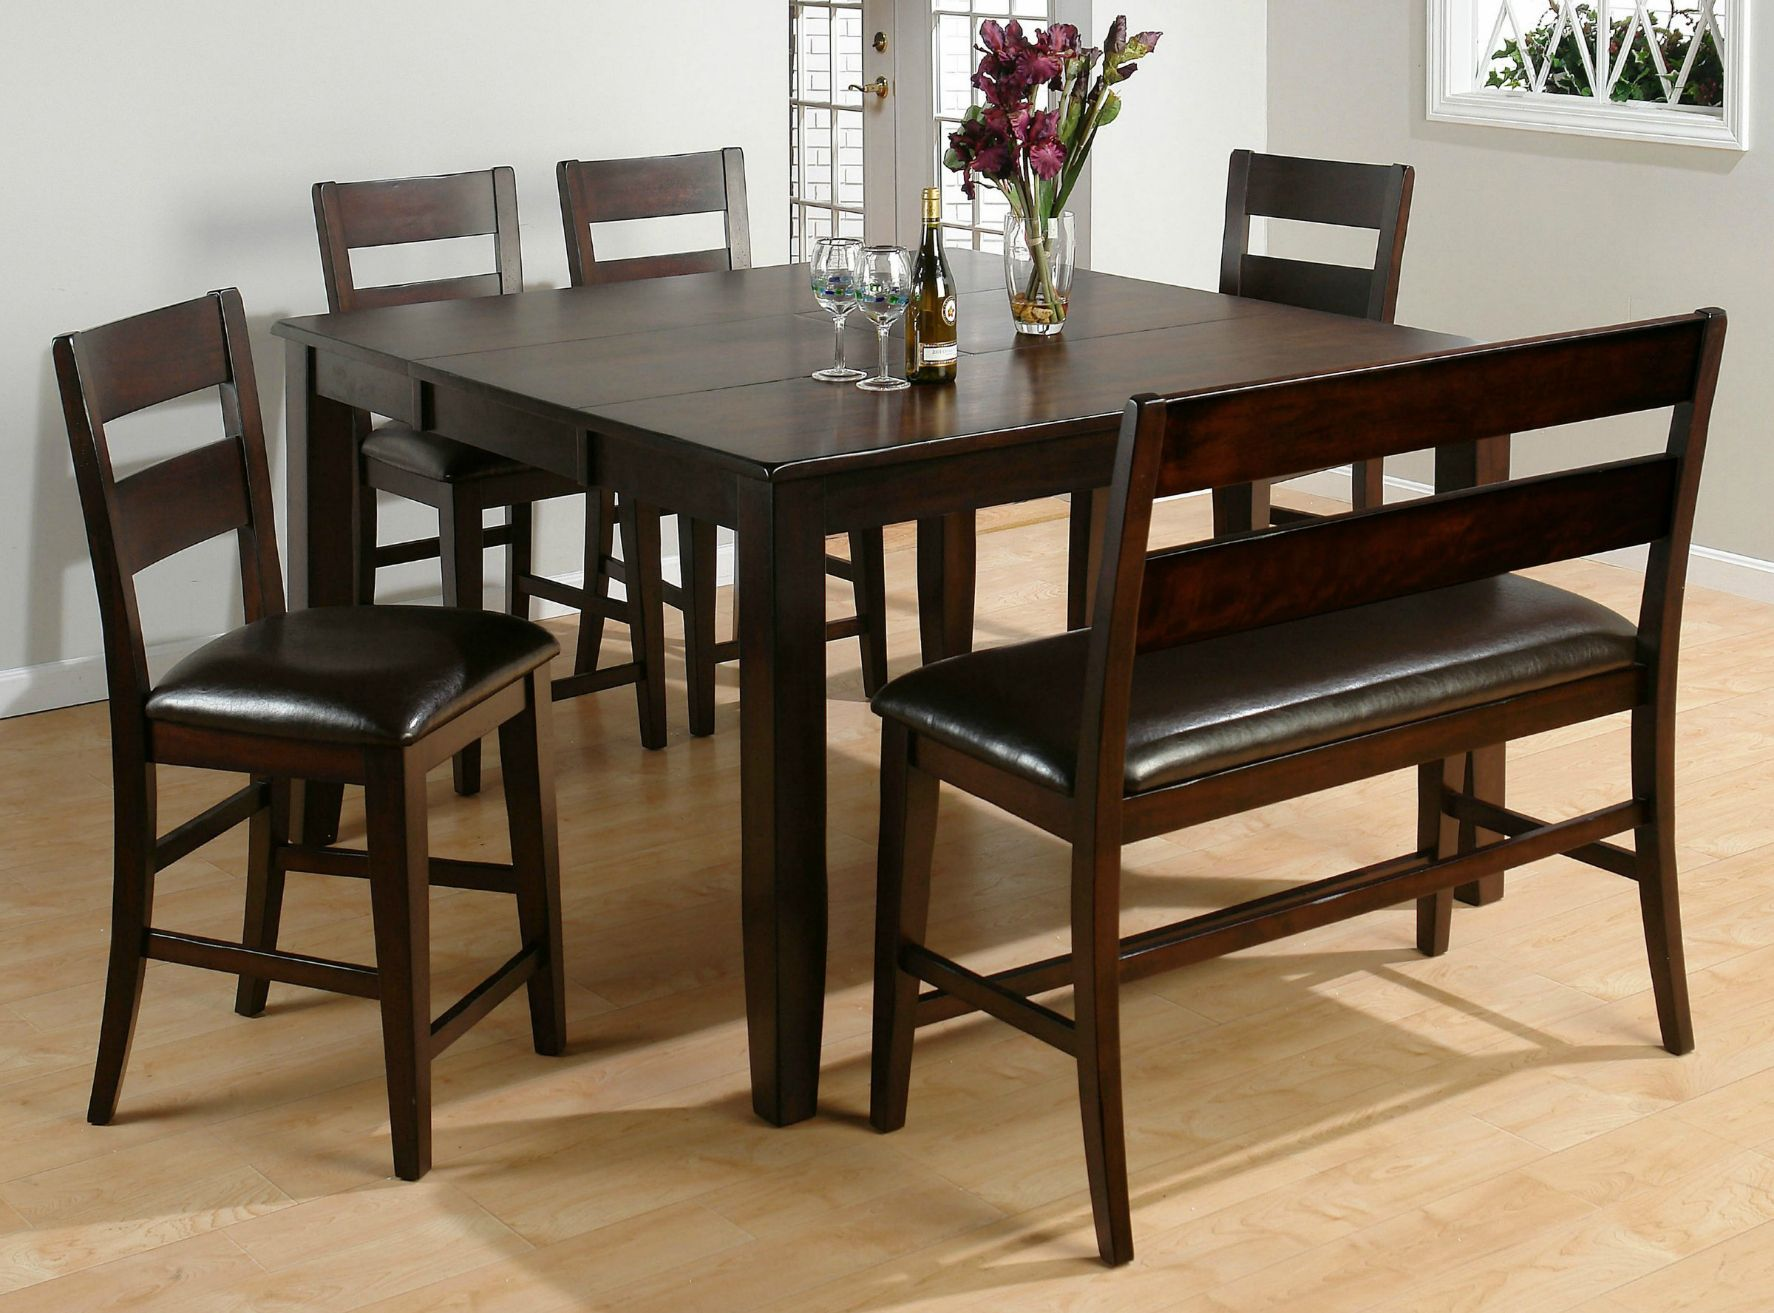 26 Dining Room Sets Big And Small With Bench Seating 2021 Tall Kitchen Table Dining Table With Bench Square Kitchen Tables